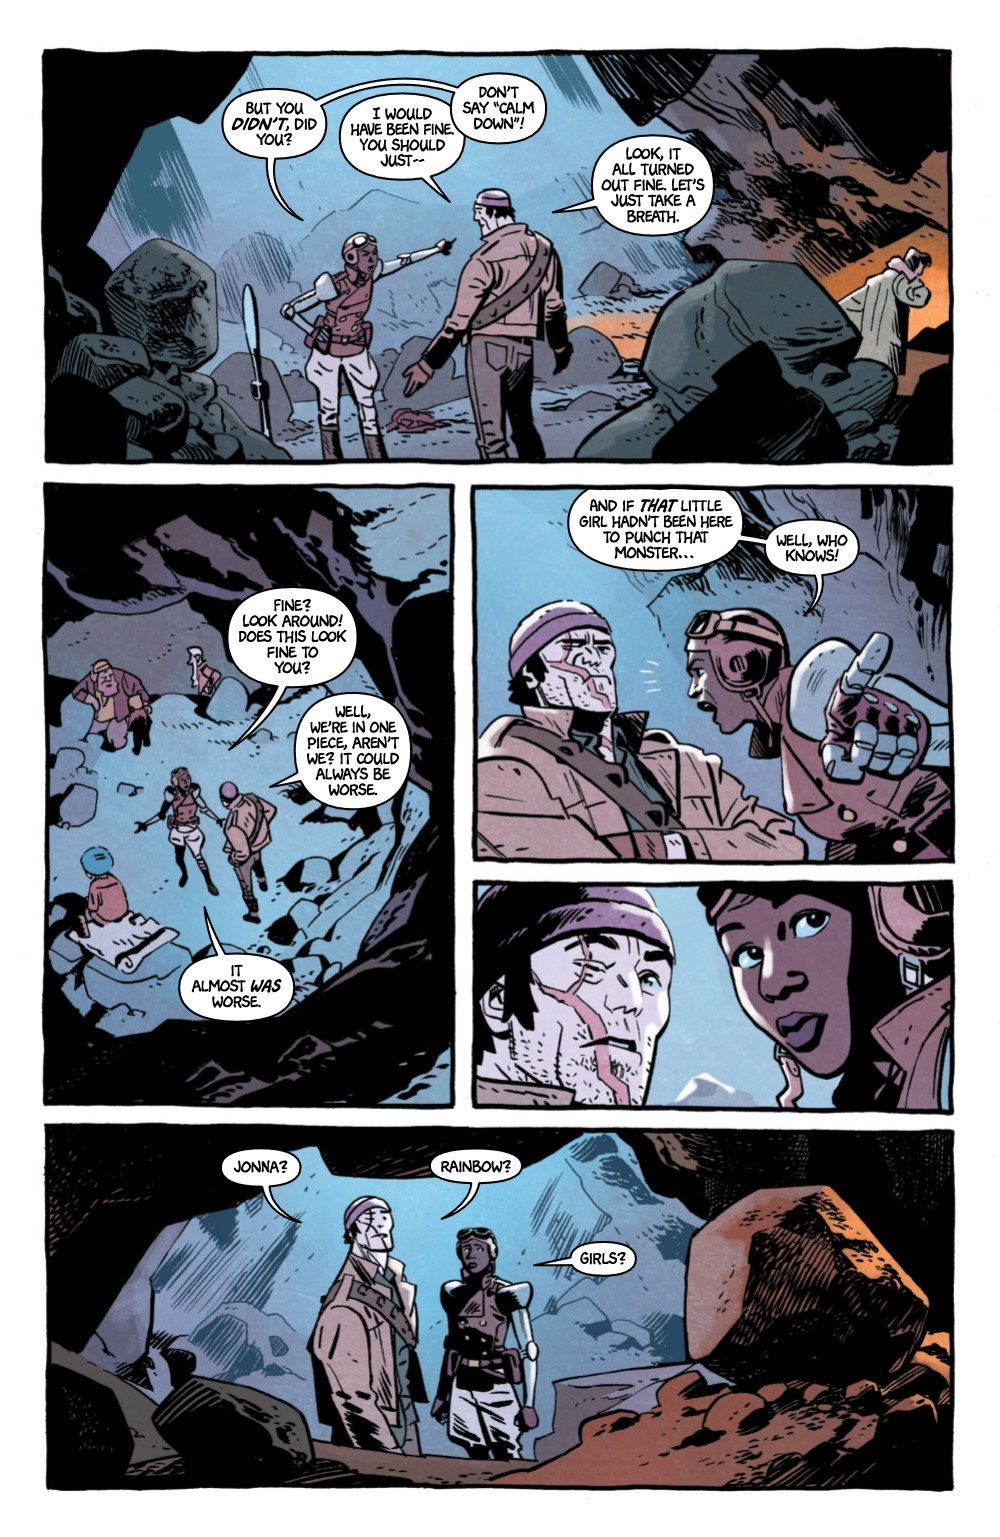 JONNA-5-REFERENCE-04 ComicList Previews: JONNA AND THE UNPOSSIBLE MONSTERS #5